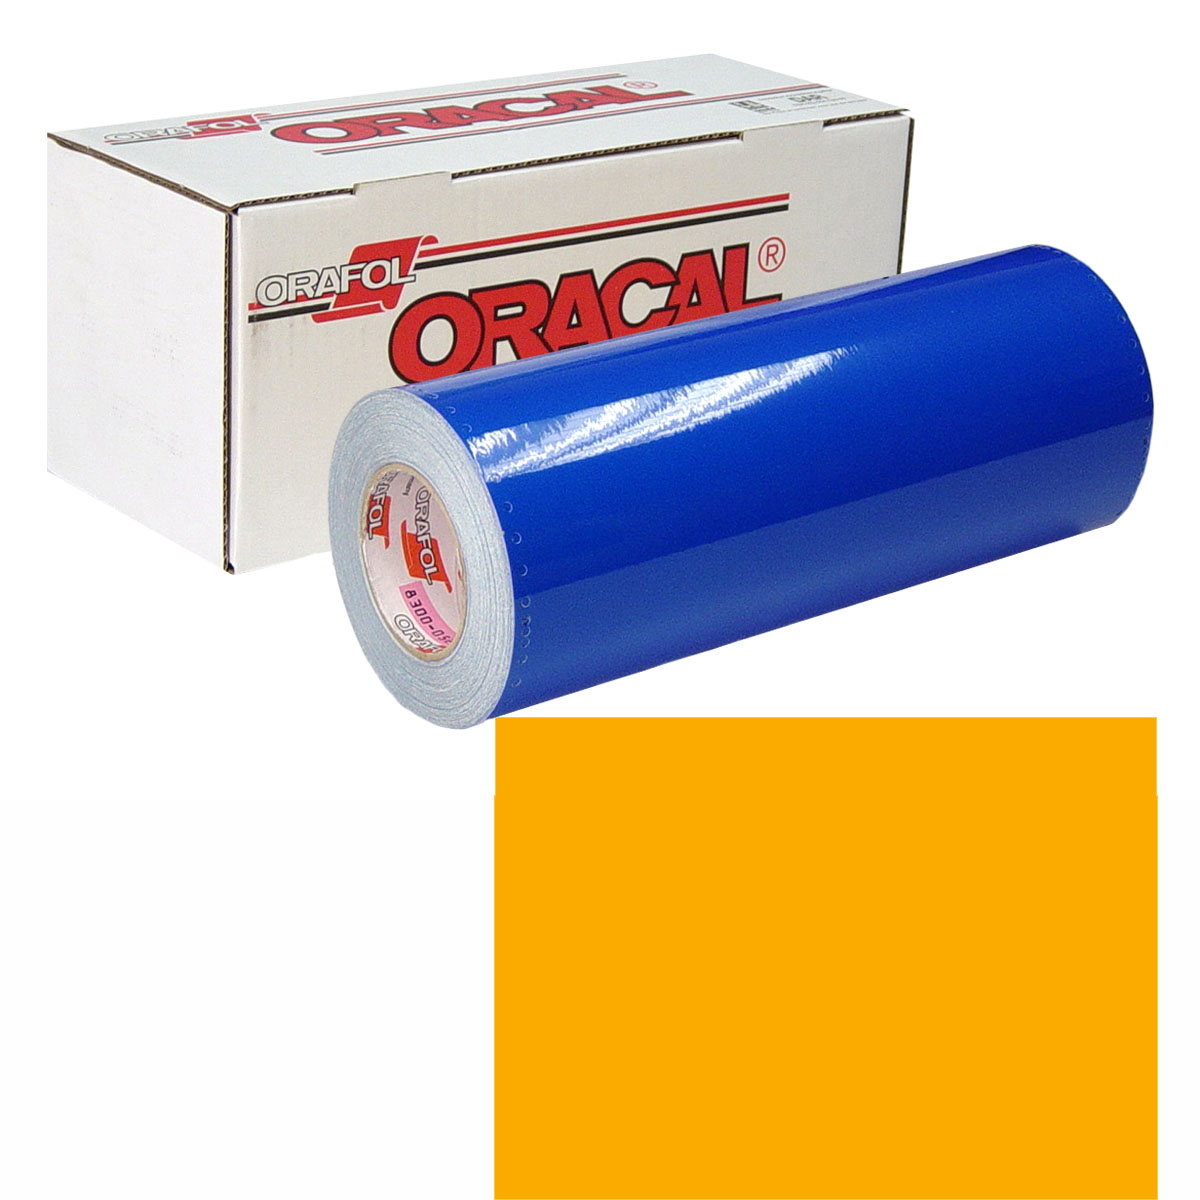 ORACAL 631 Unp 24In X 10Yd 020 Golden Yellow